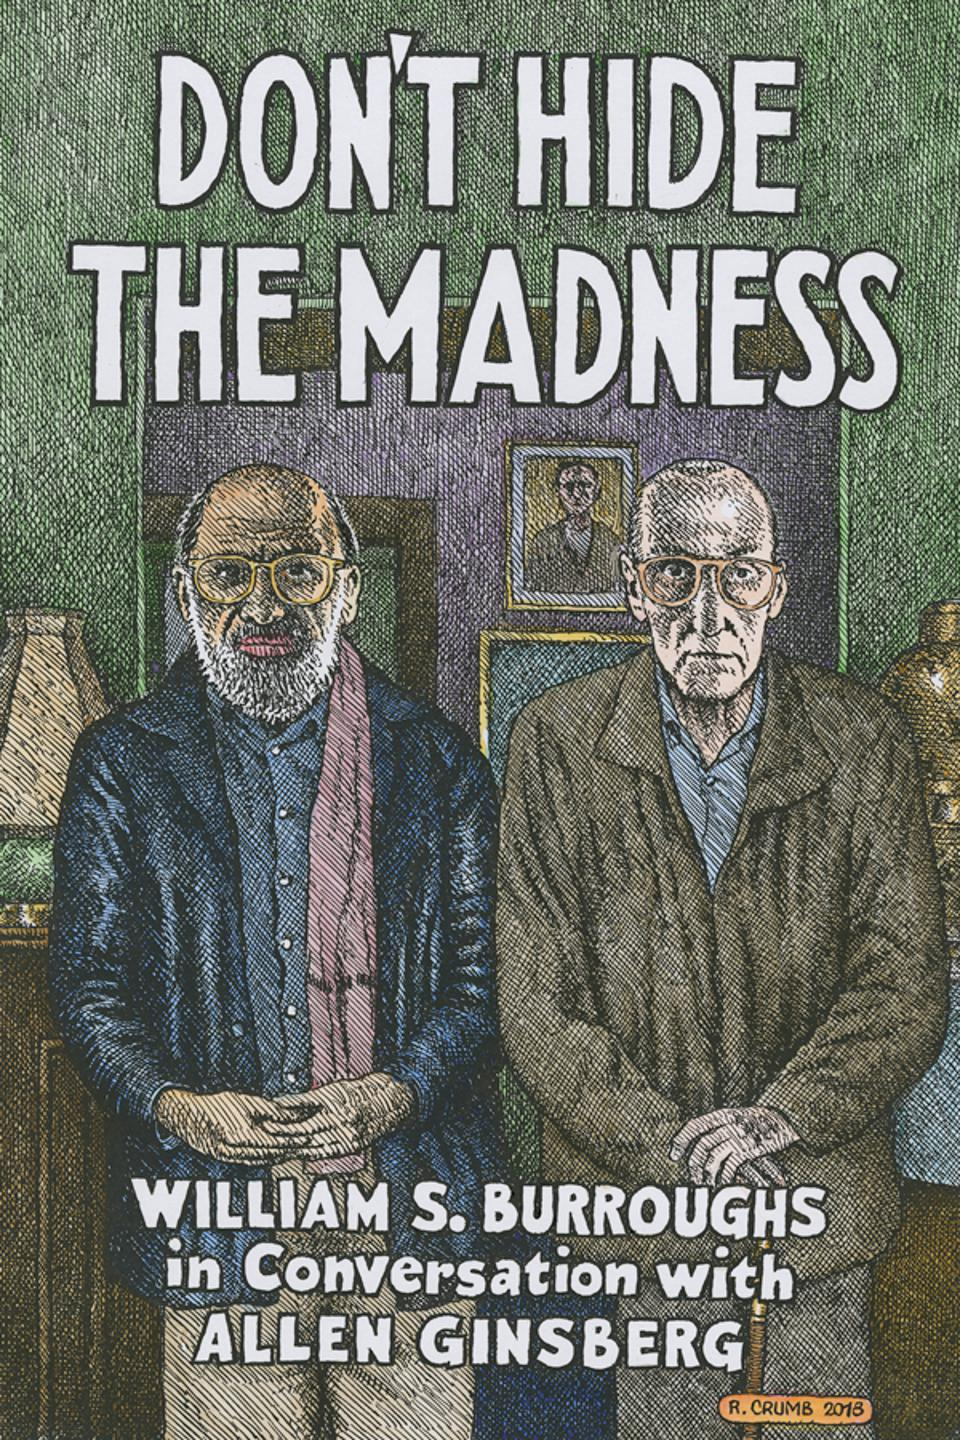 william s burroughs allen ginsberg don't hide the madness three rooms press book cover